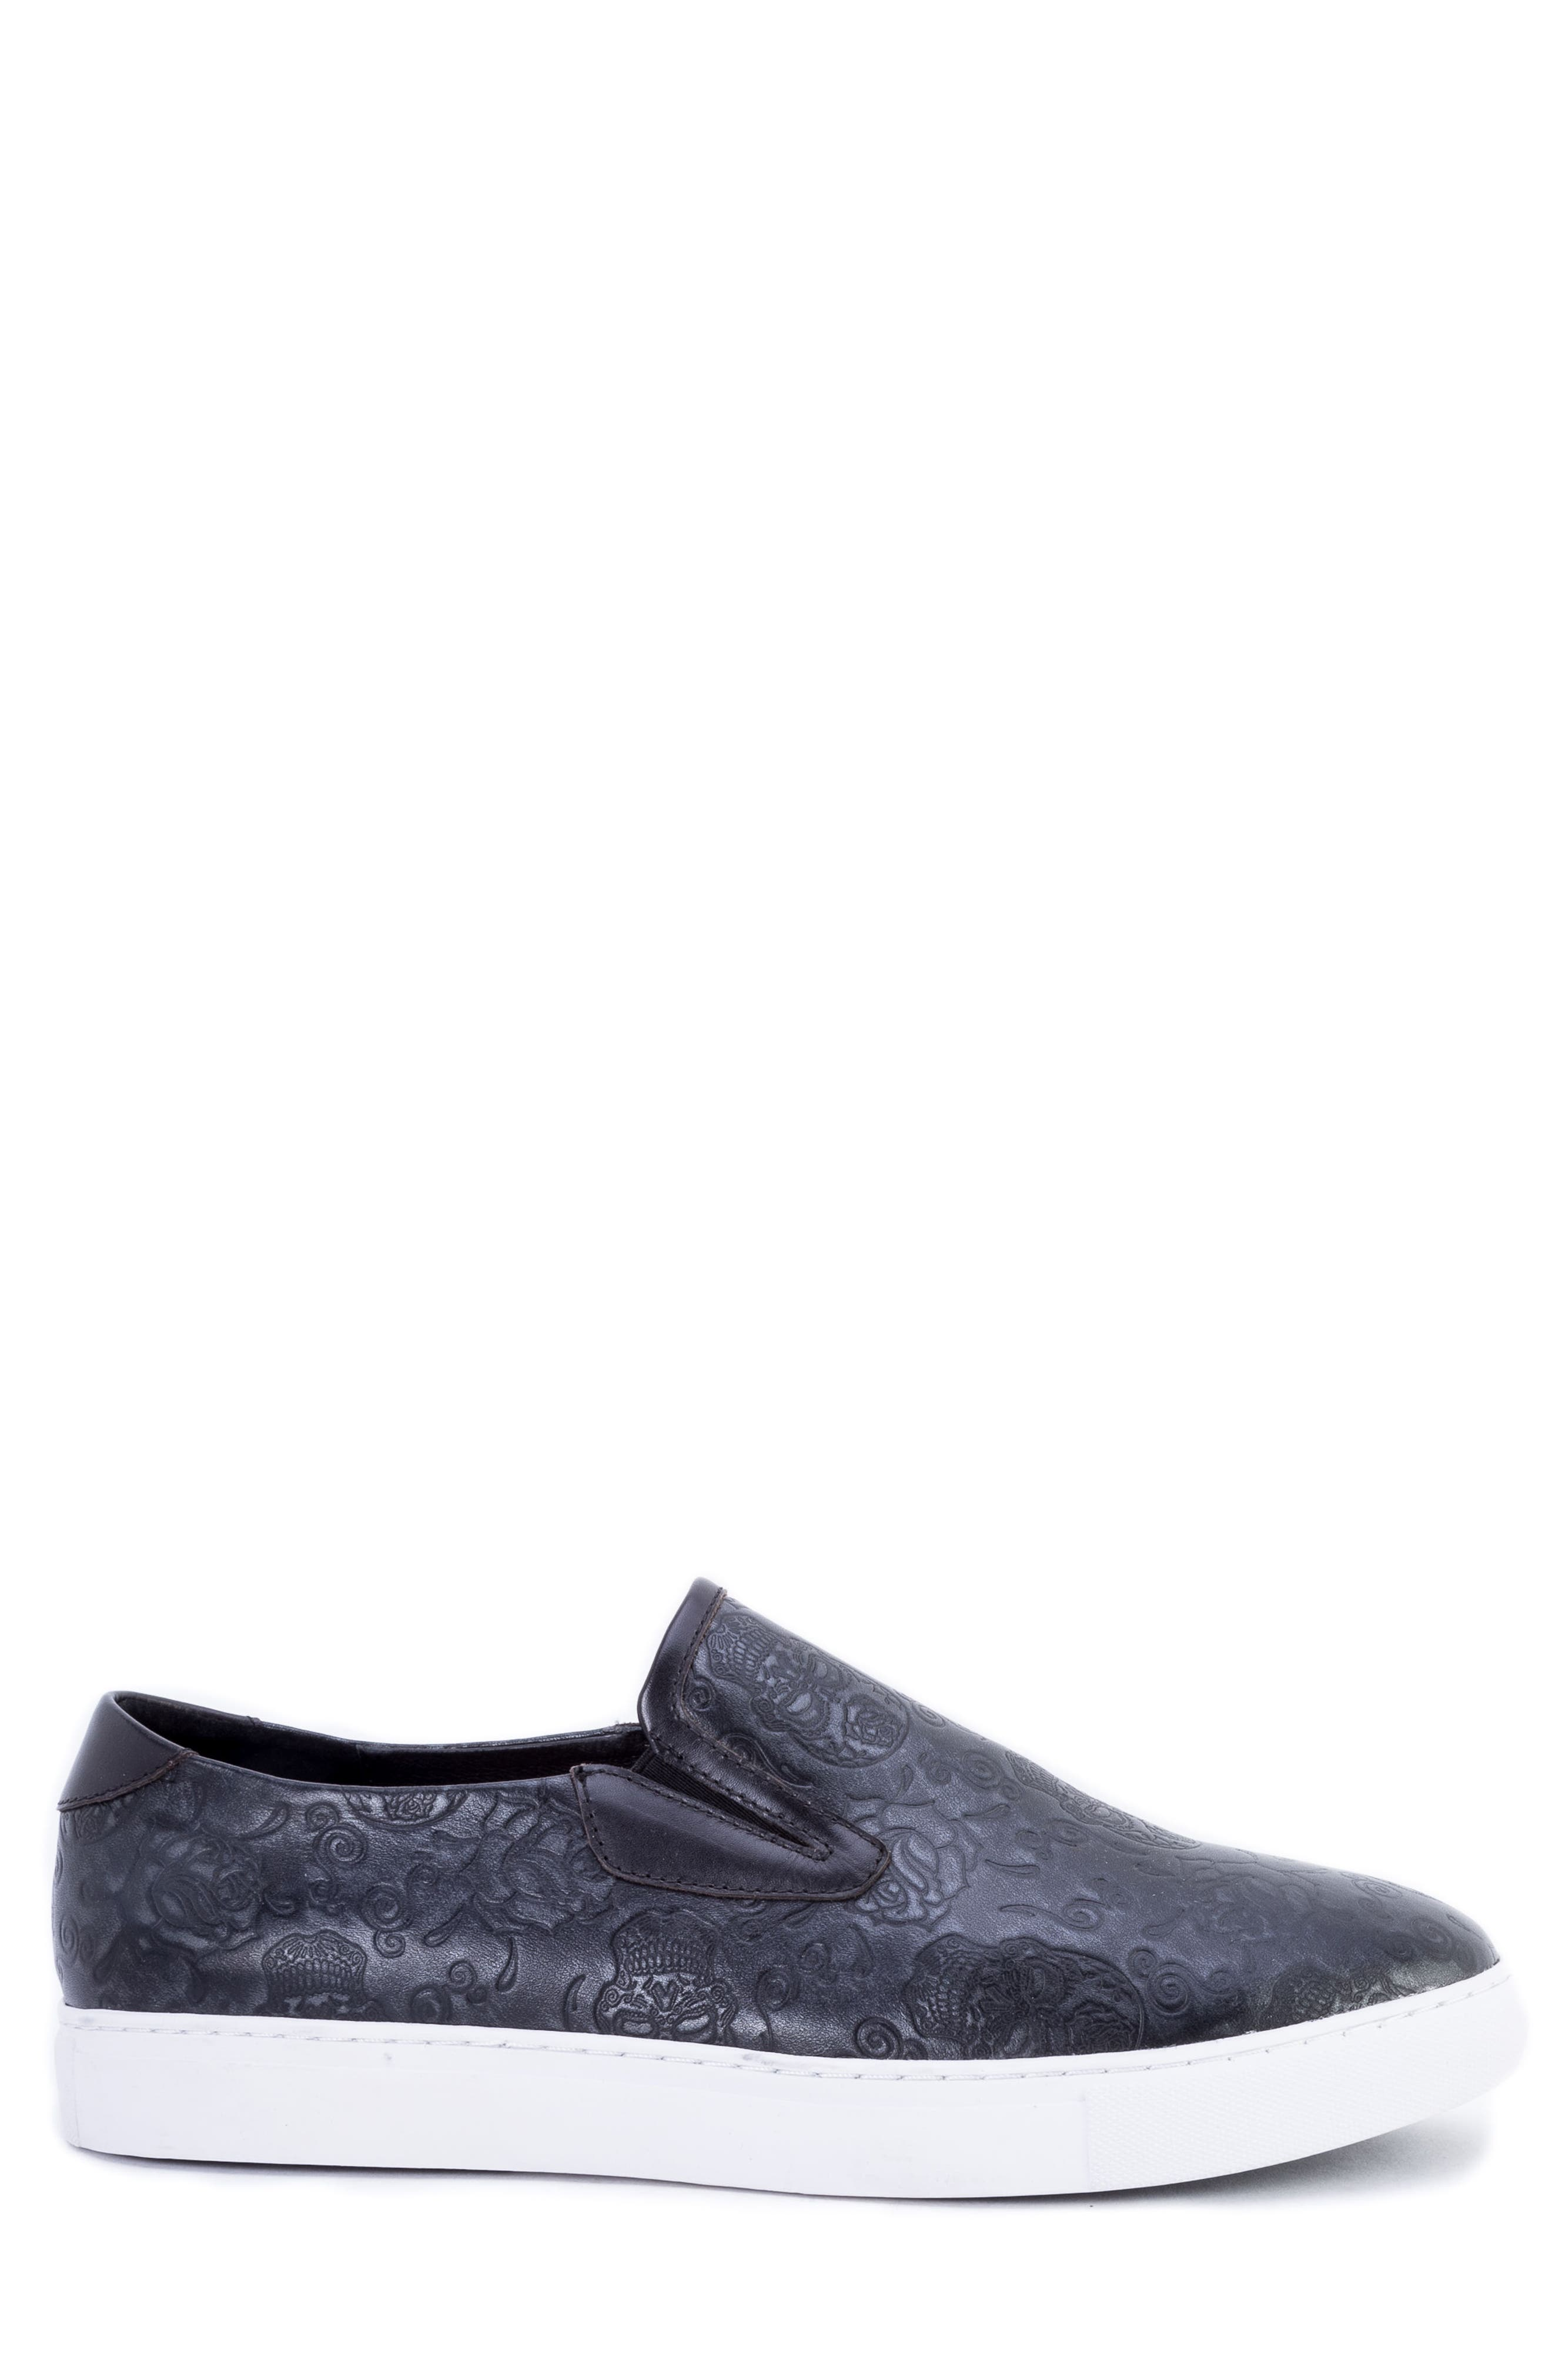 Baxter Embossed Slip-On Sneaker,                             Alternate thumbnail 3, color,                             BLACK LEATHER